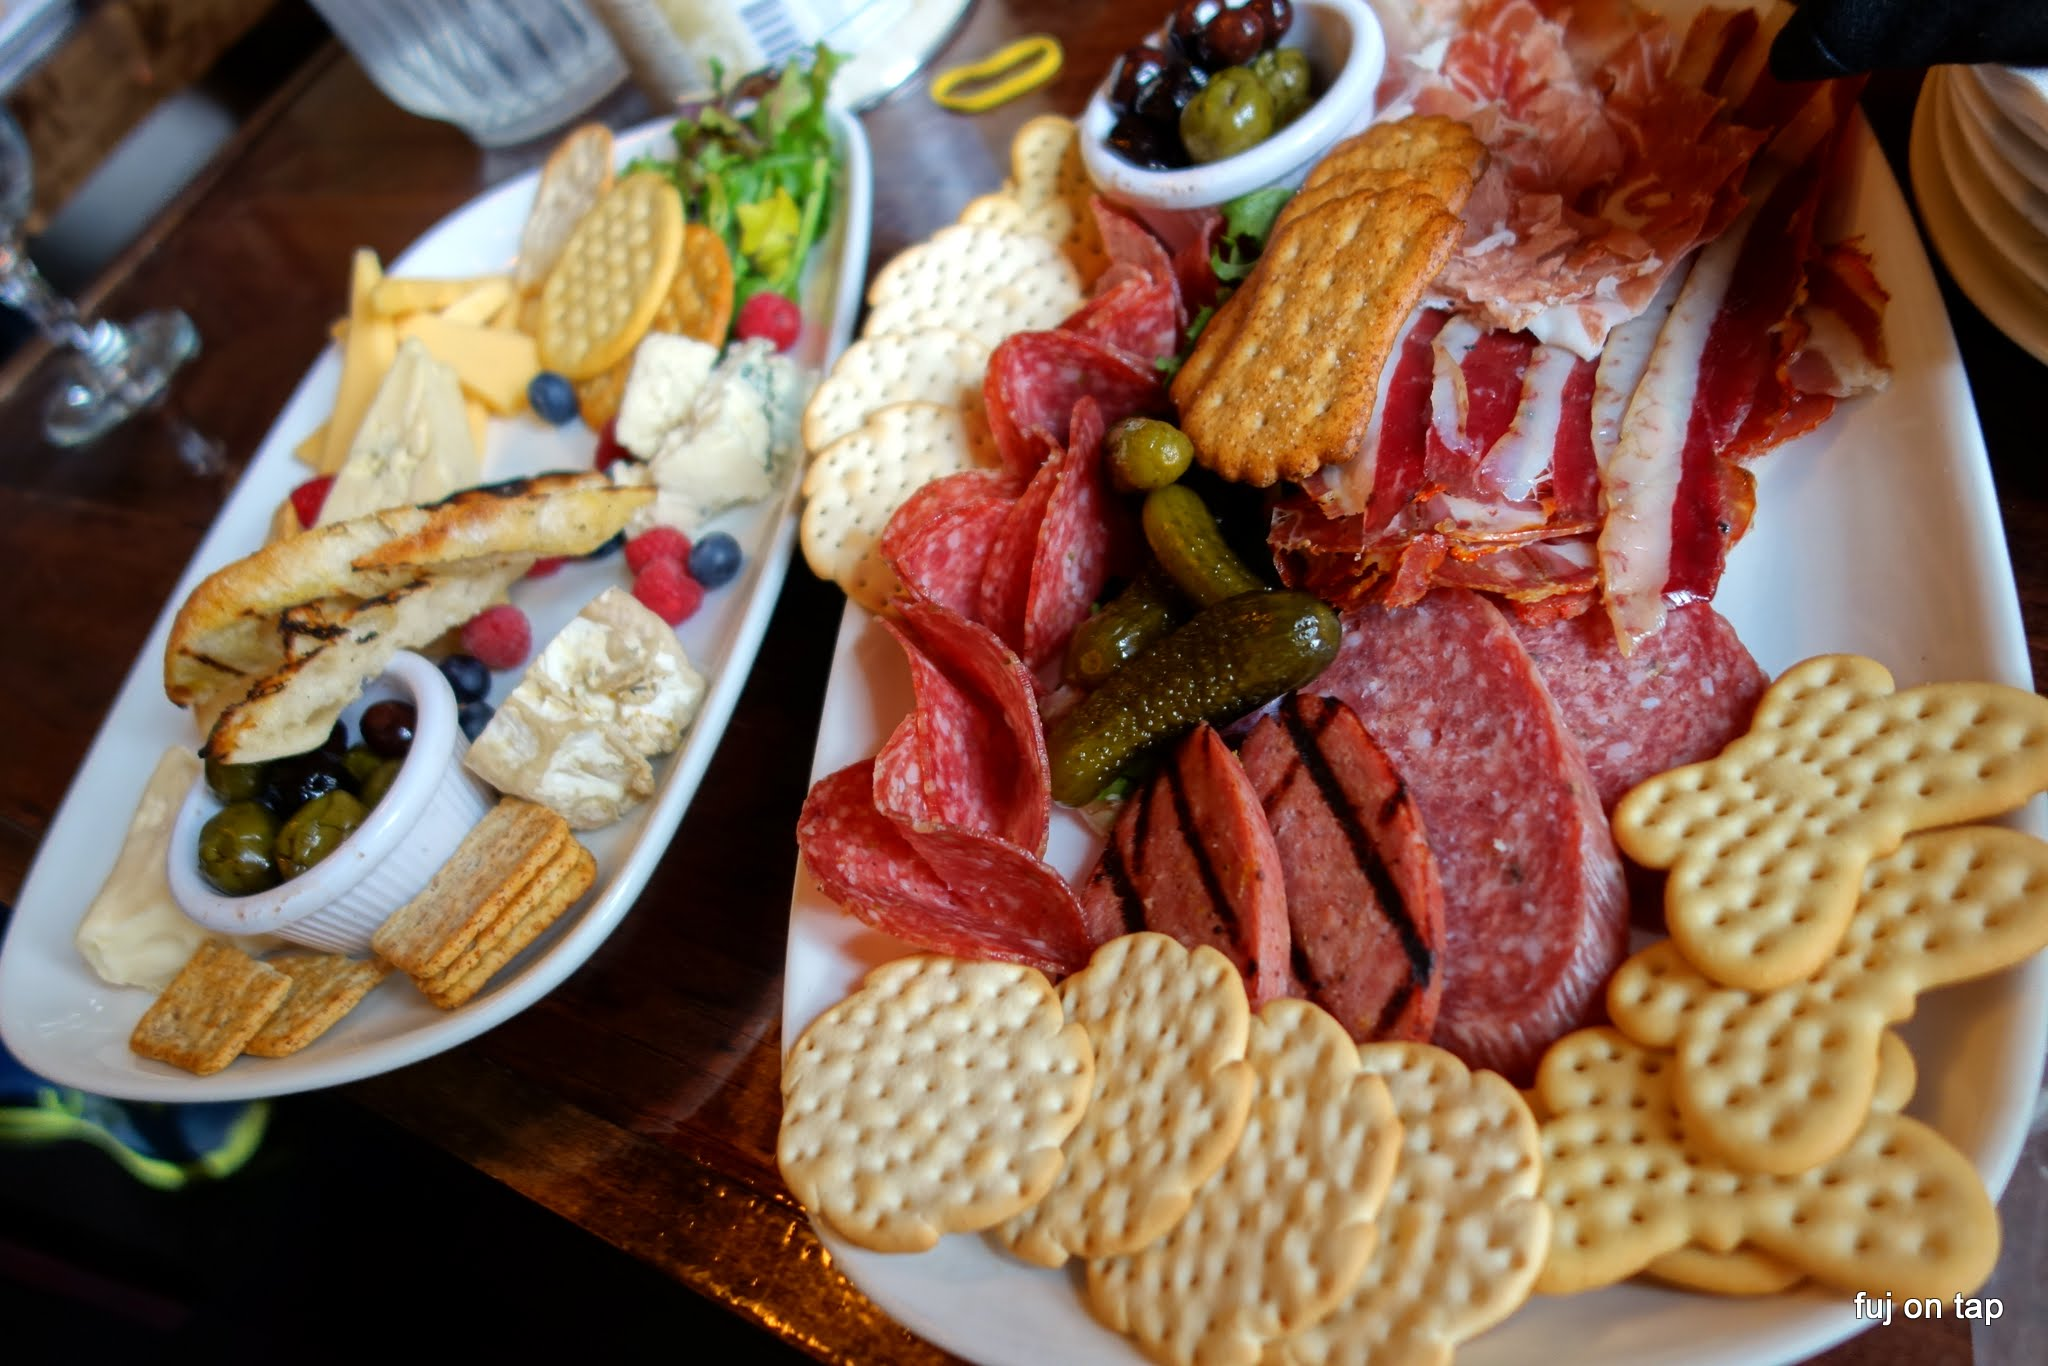 Charcuterie and Cheese Plate at The Bier Abbey